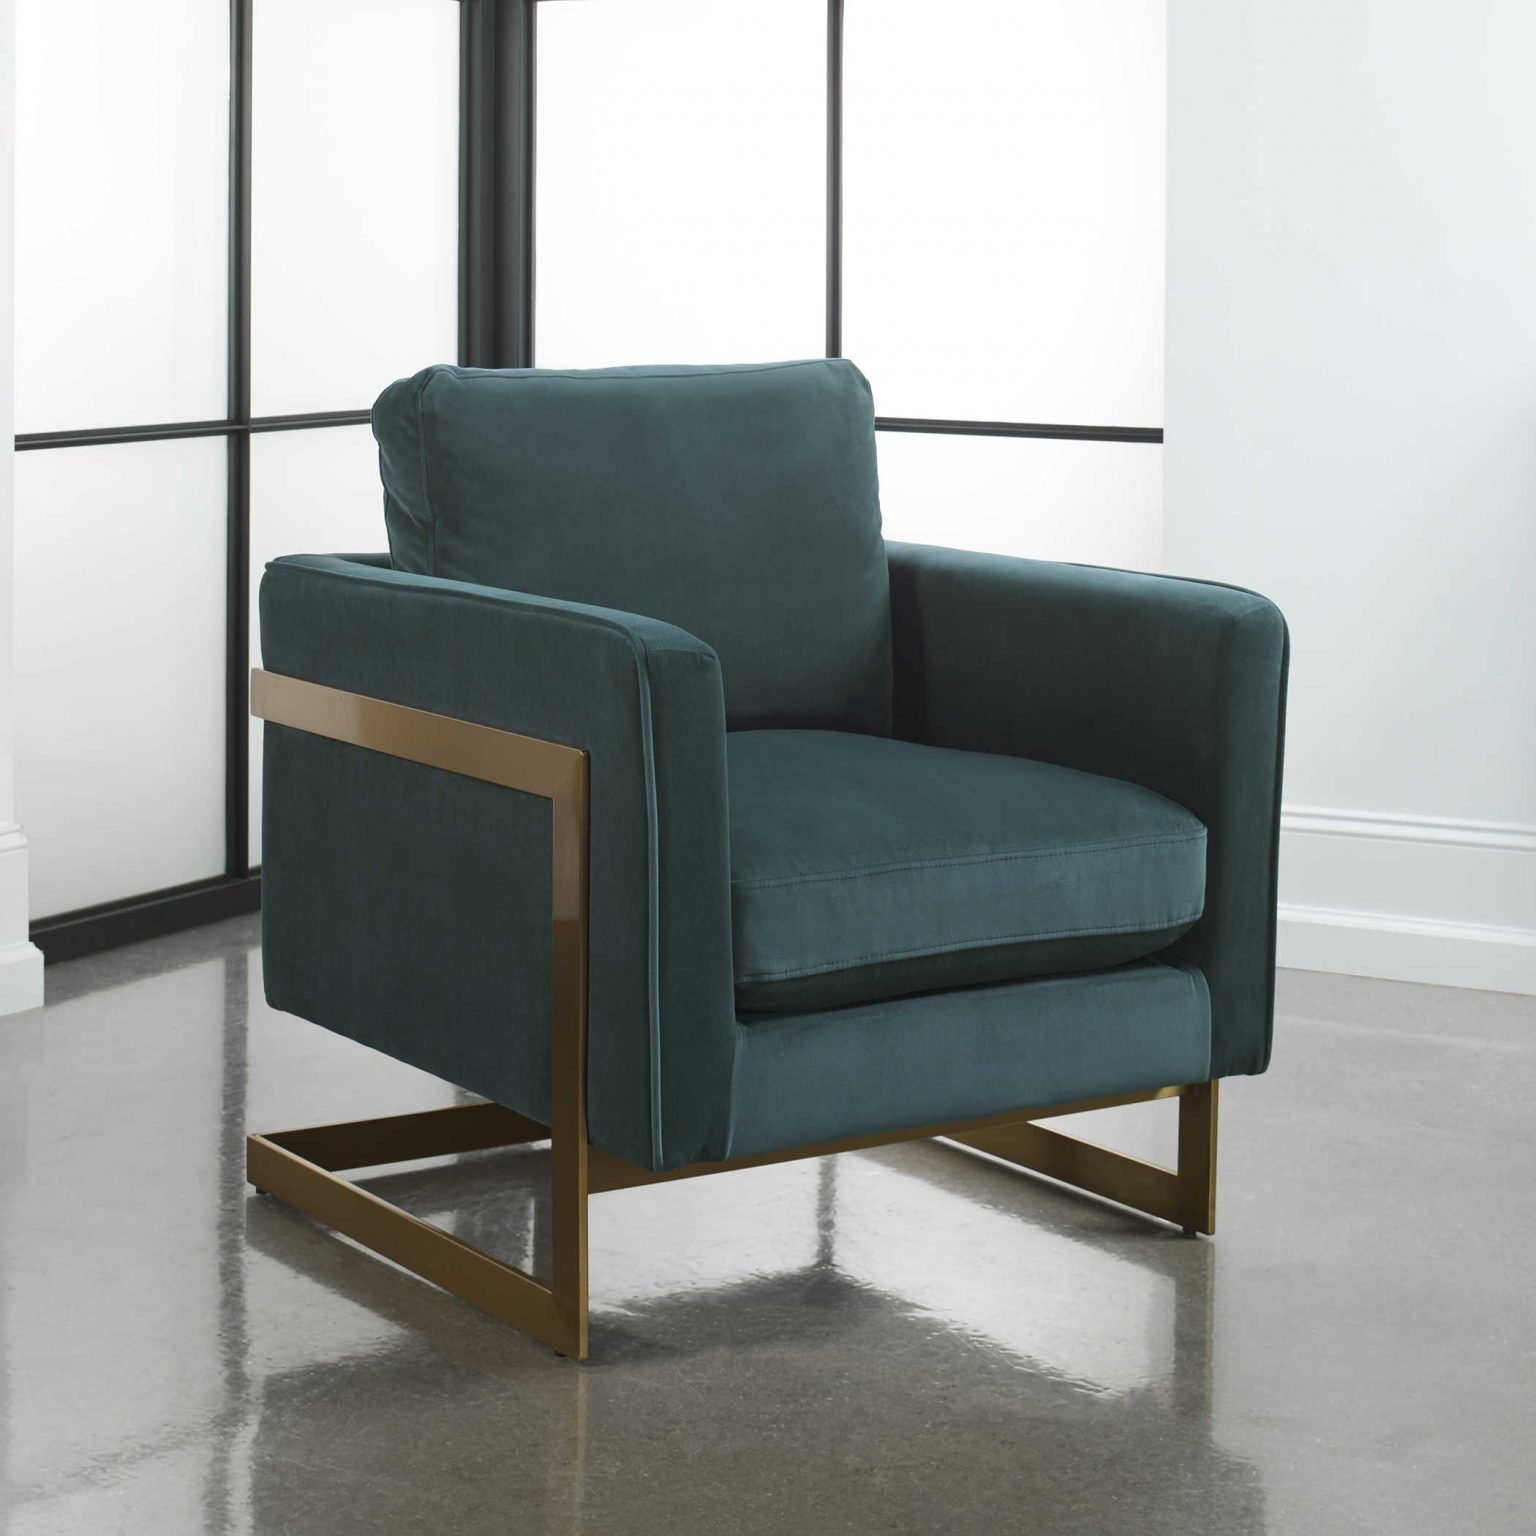 Teal, art deco revival chair with square lines - perfect for 2021 interior design and color trends